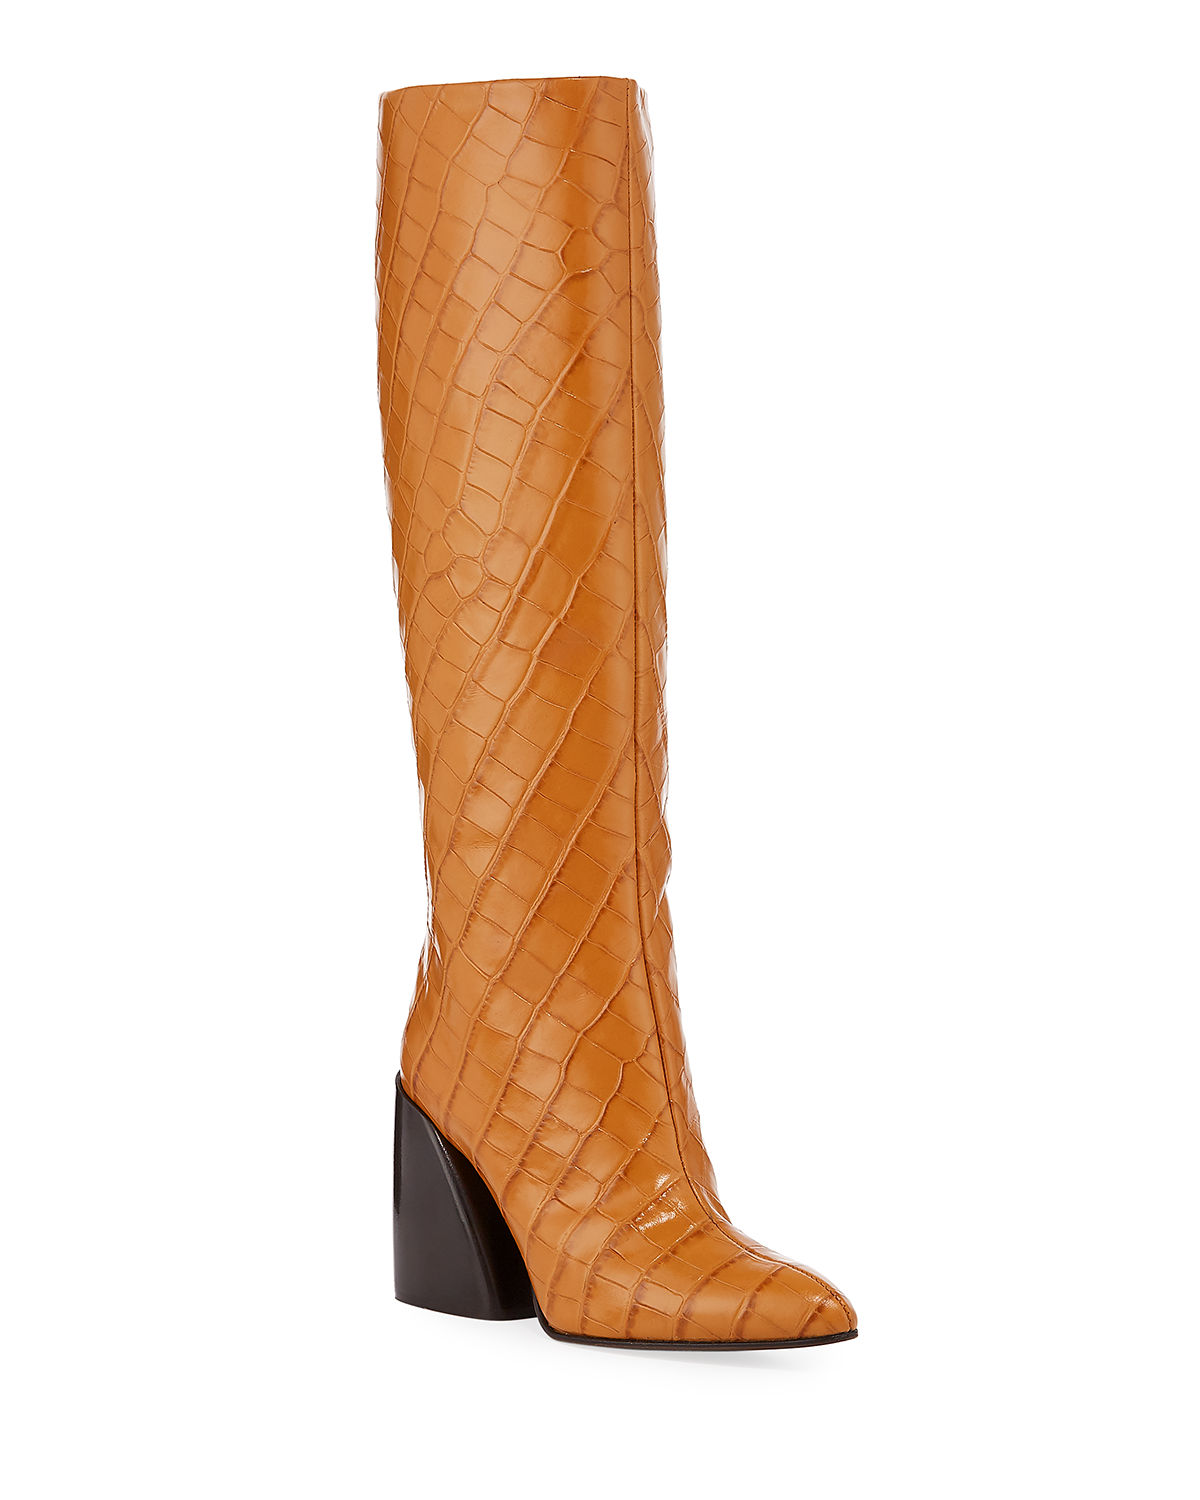 Chloé Boots WAVE CROC-EMBOSSED TALL BOOTS